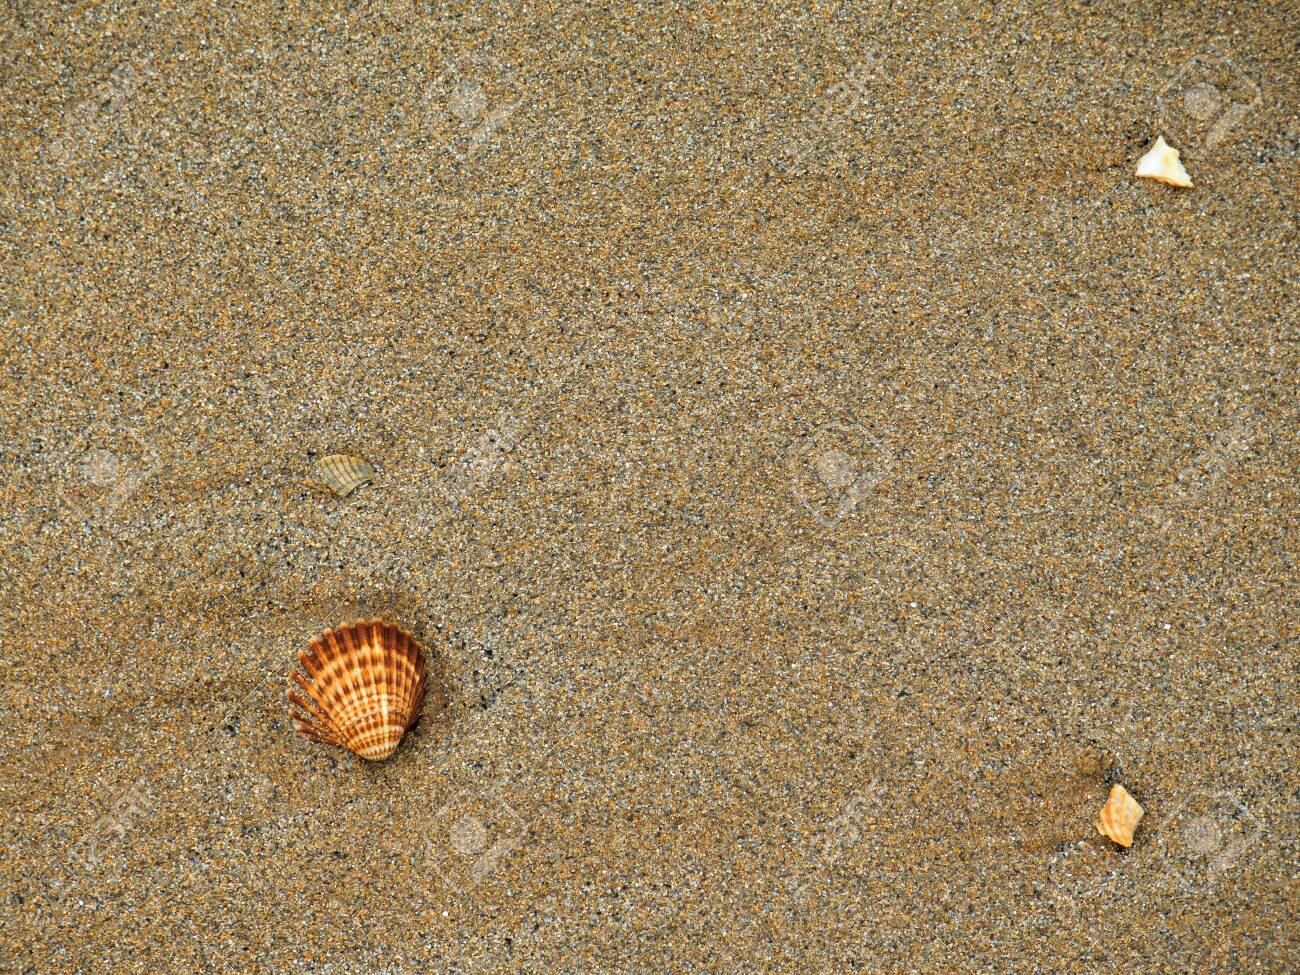 the shells in the sand - 135131914